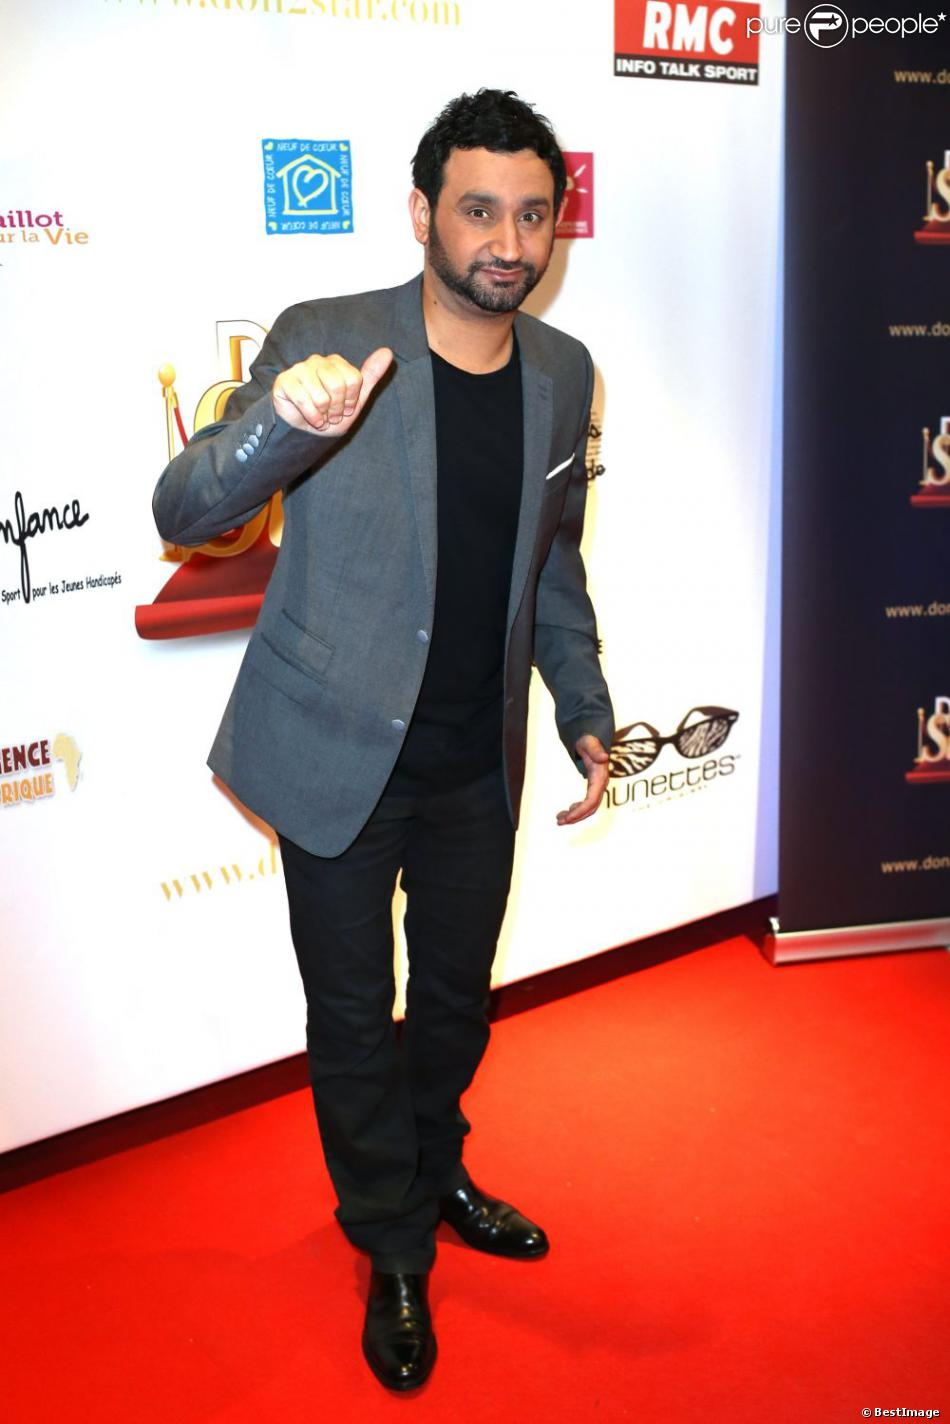 Cyril Hanouna en mars 2013 à Paris